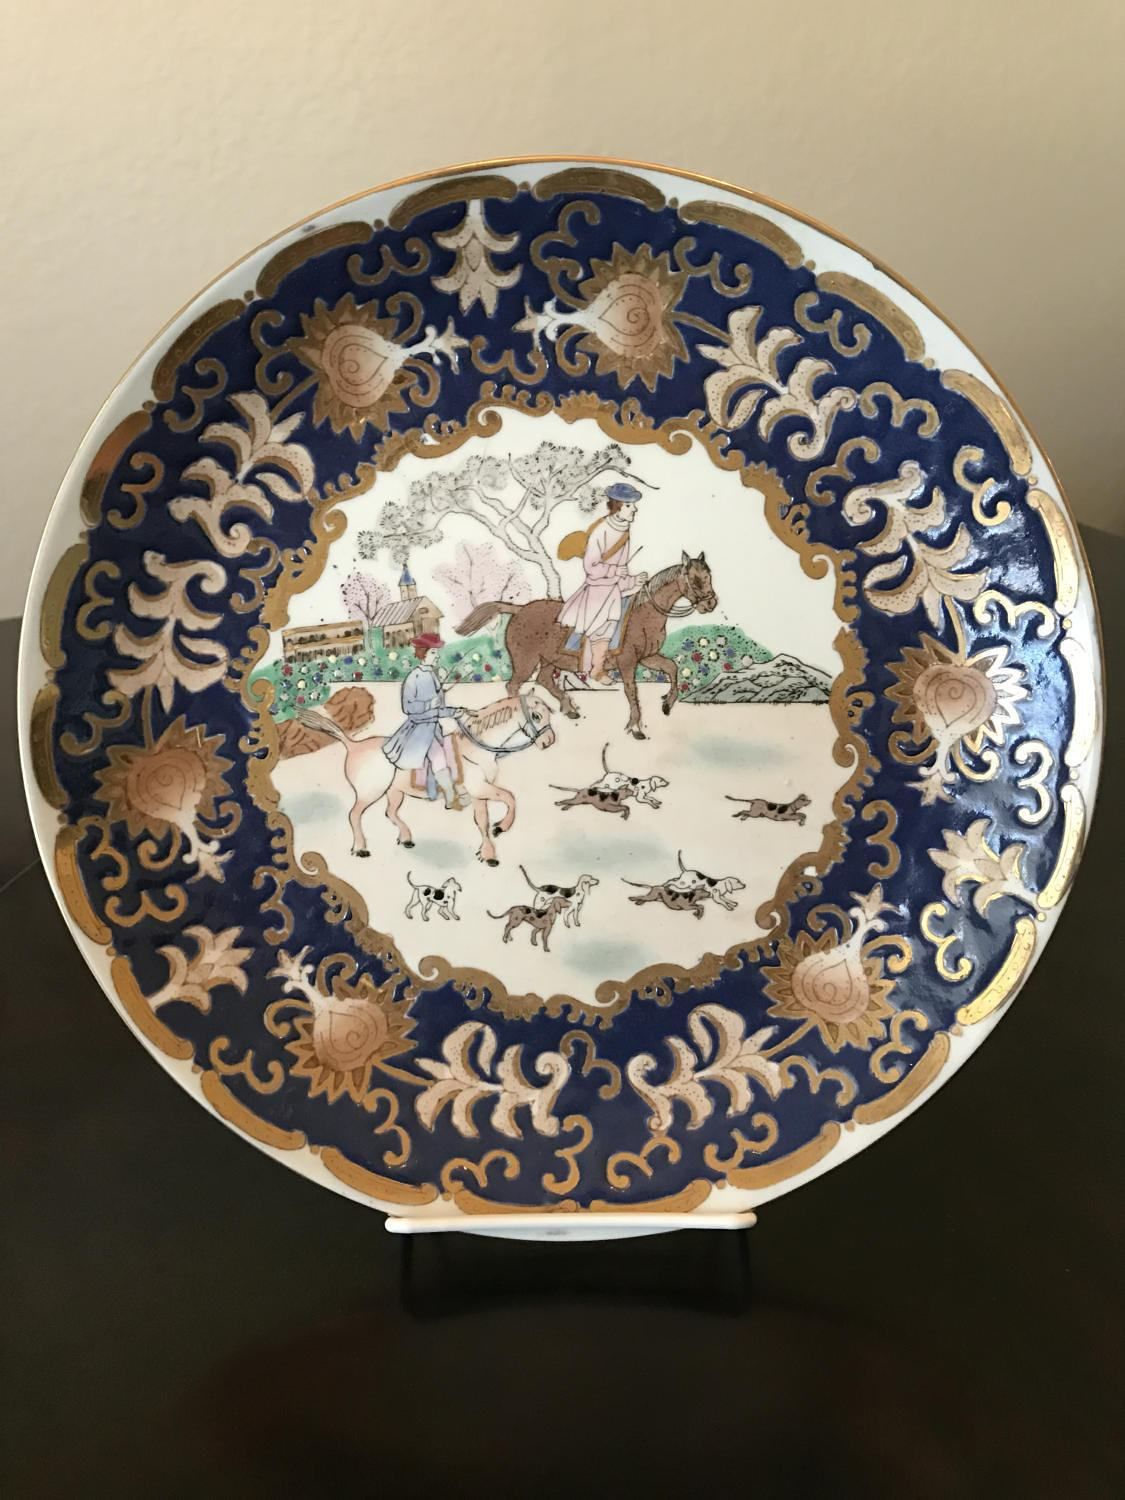 Mid Century Chinese Decorative Plate/WBI Export Plate/Hunting Scene Plate by BazemoreVault on & Mid Century Chinese Decorative Plate/WBI Export Plate/Hunting ...